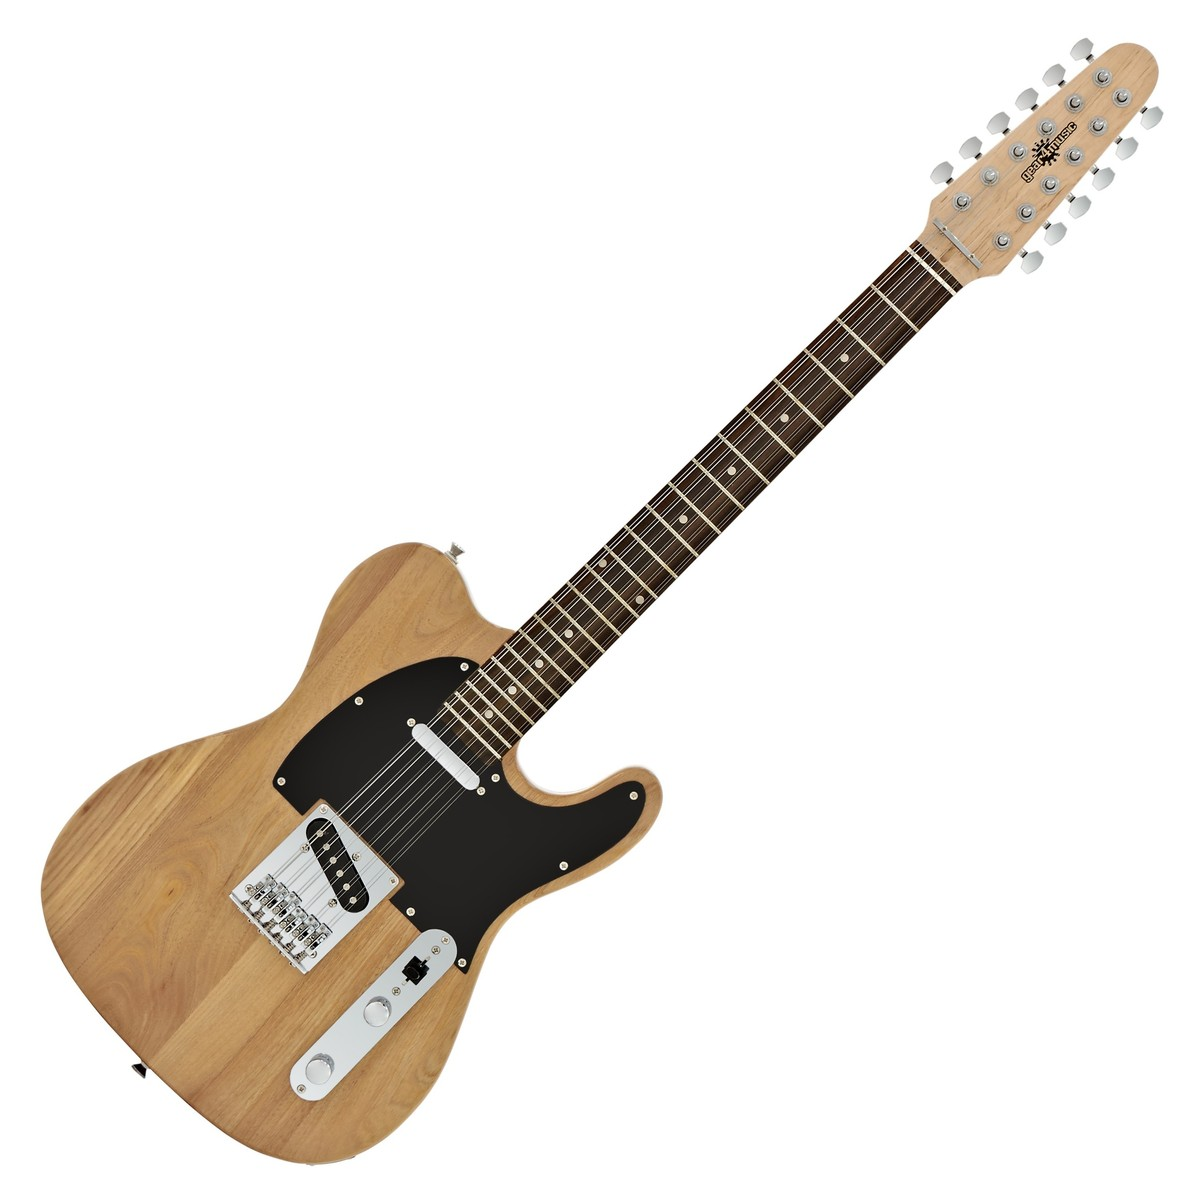 knoxville deluxe 12 string electric guitar by gear4music b stock at gear4music. Black Bedroom Furniture Sets. Home Design Ideas